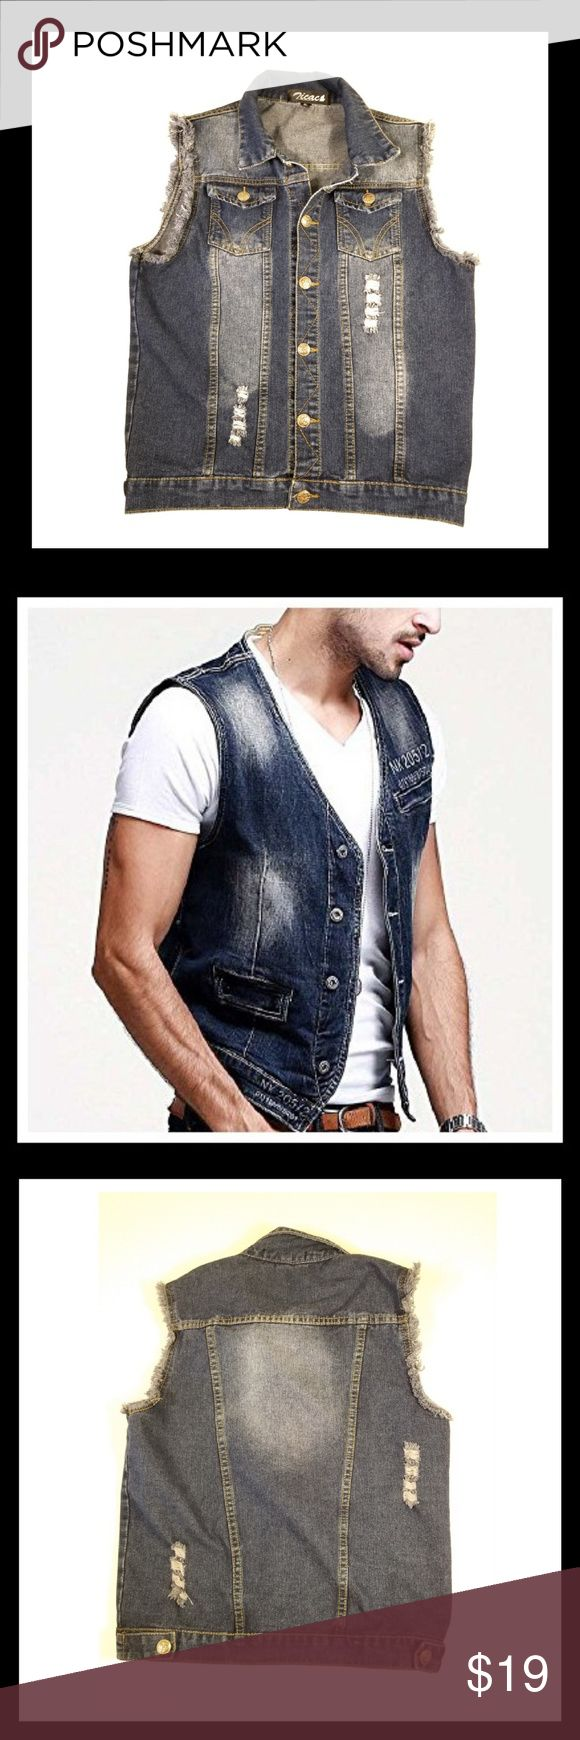 Zicac Mens Denim Vest 🌶Raw edges on arm openings  🌶Silver tone anchor butt…